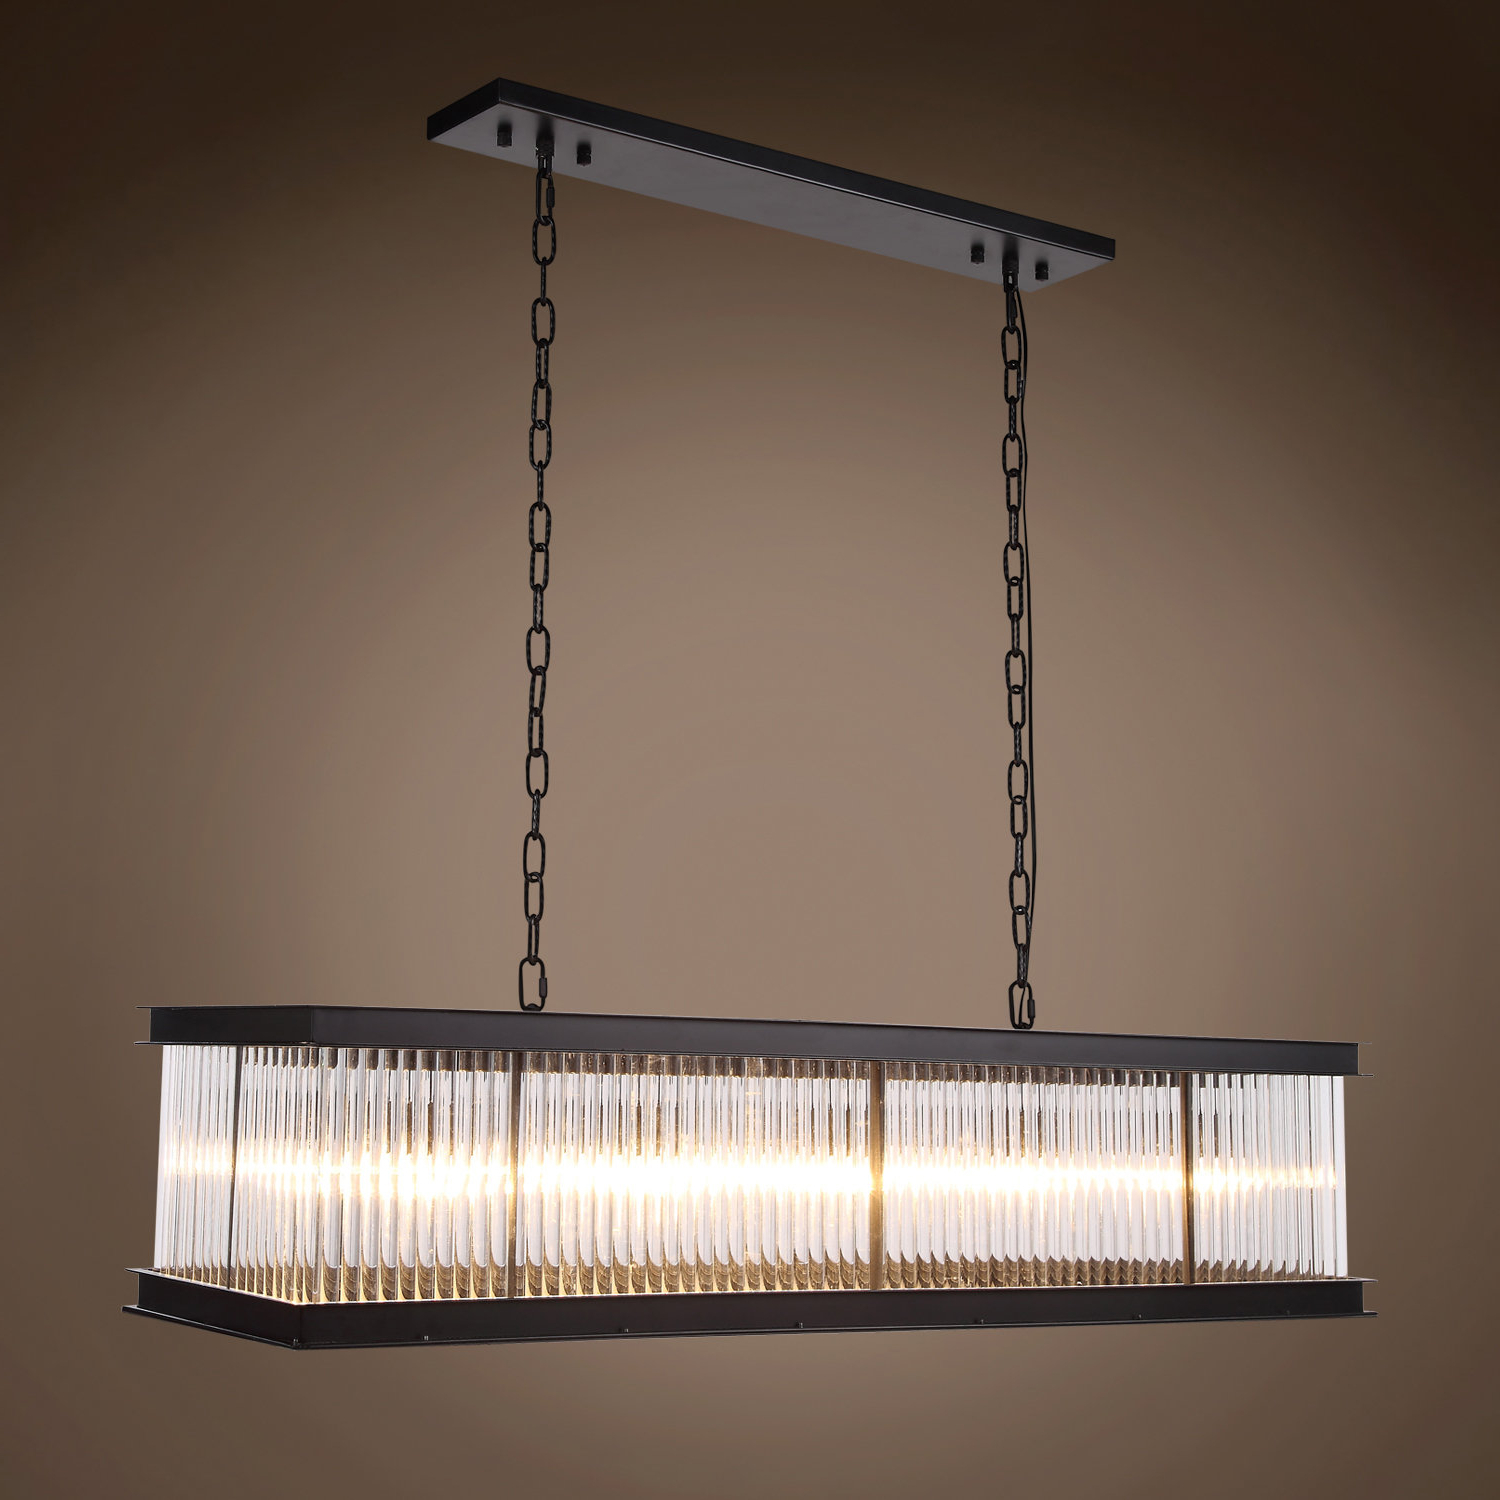 Hewitt 4 Light Square Chandeliers Within 2019 Fulghum 10 Light Square/rectangle Chandelier (View 8 of 20)